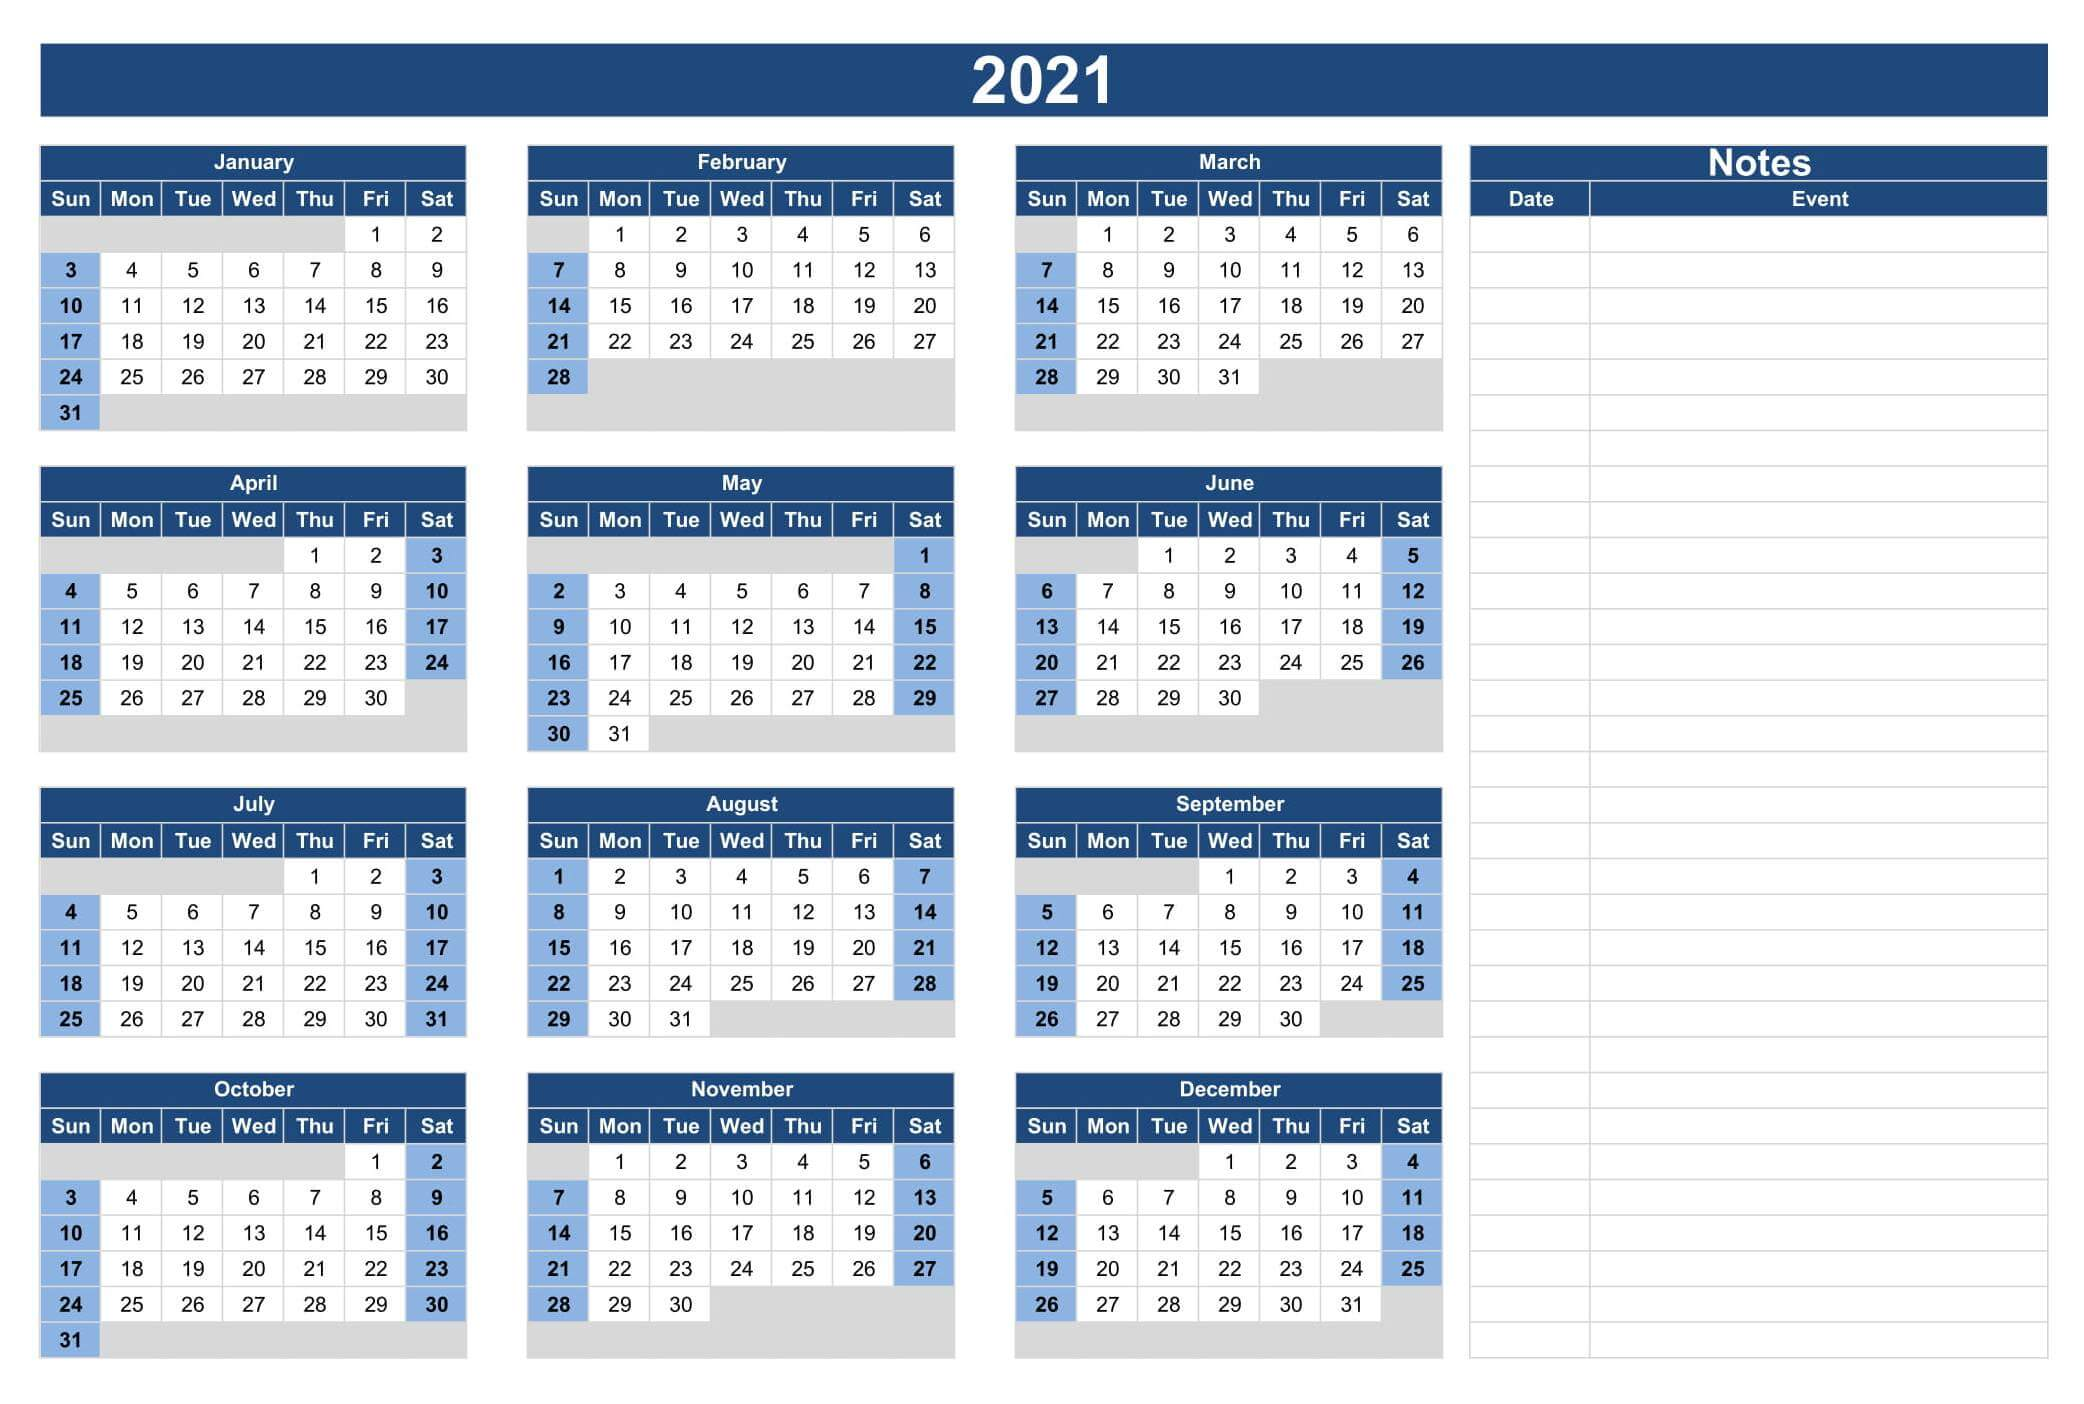 Yearly Calendar 2021 With Notes